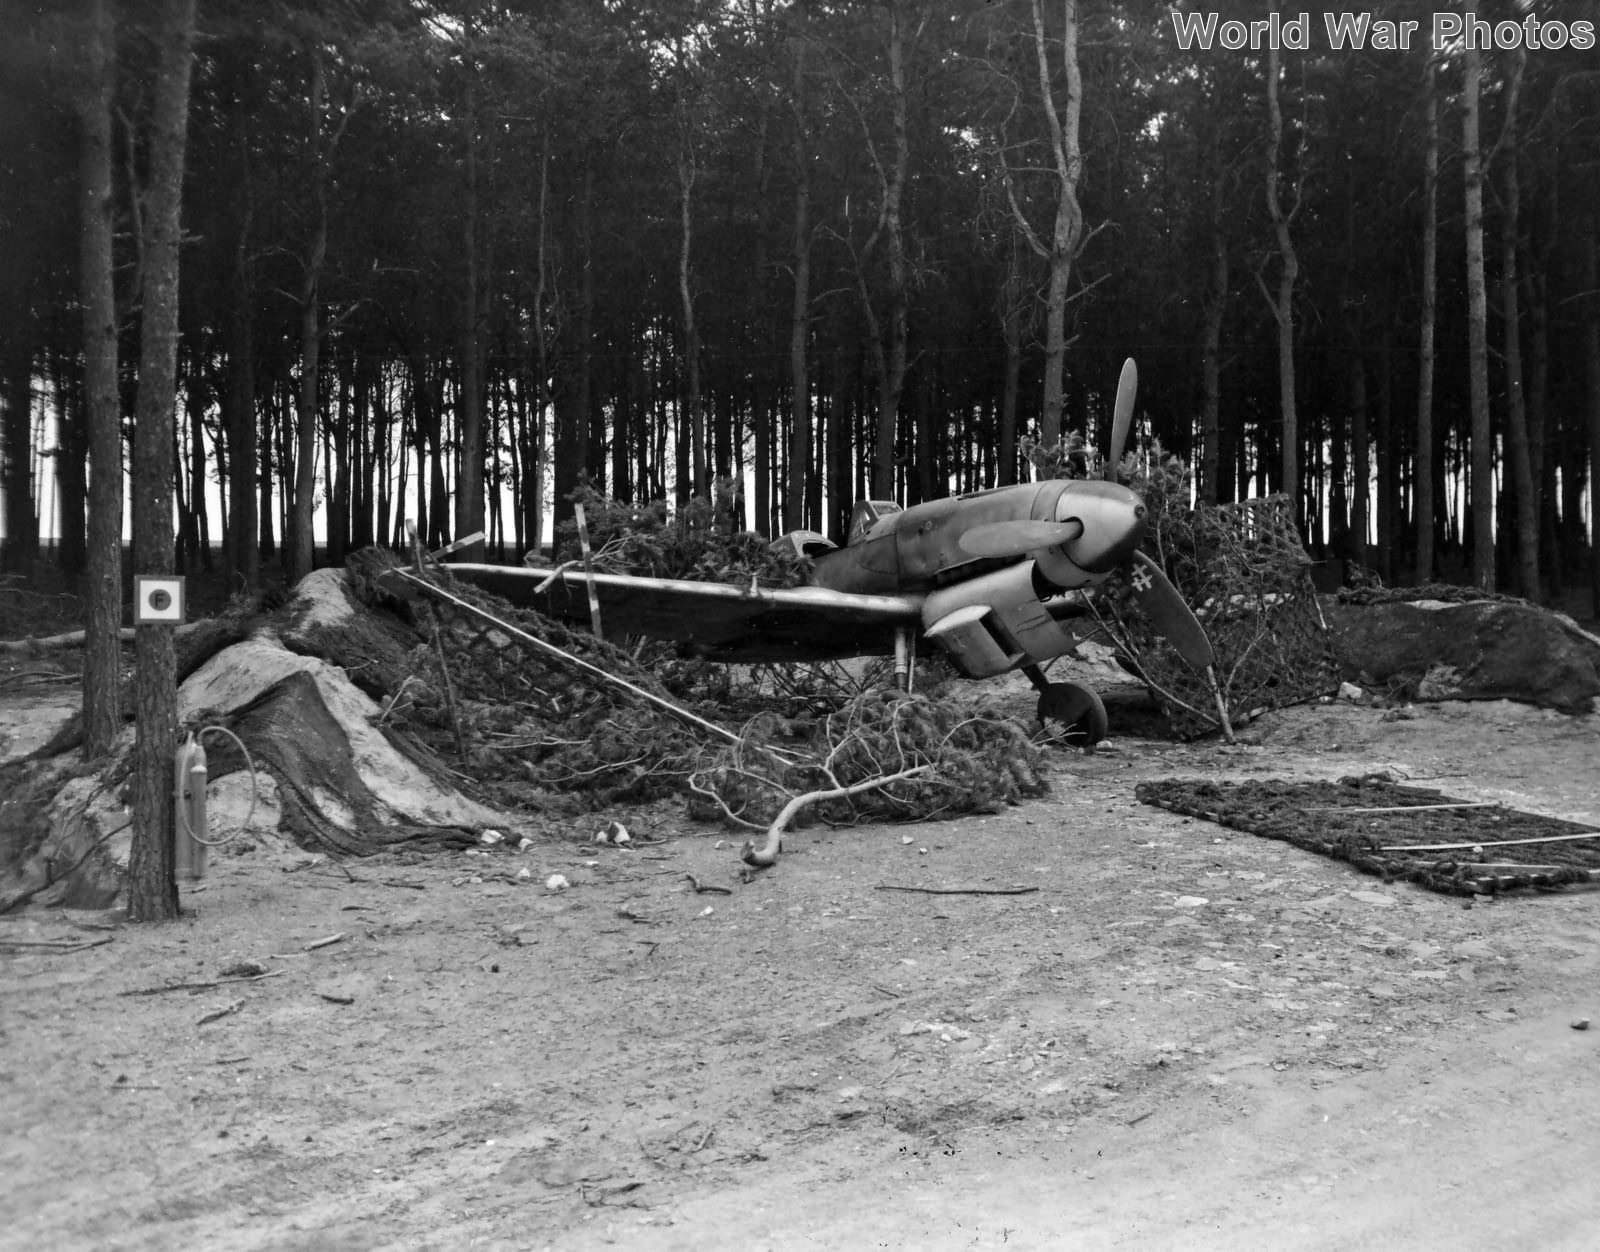 Bf 109 captured by US near Stendal